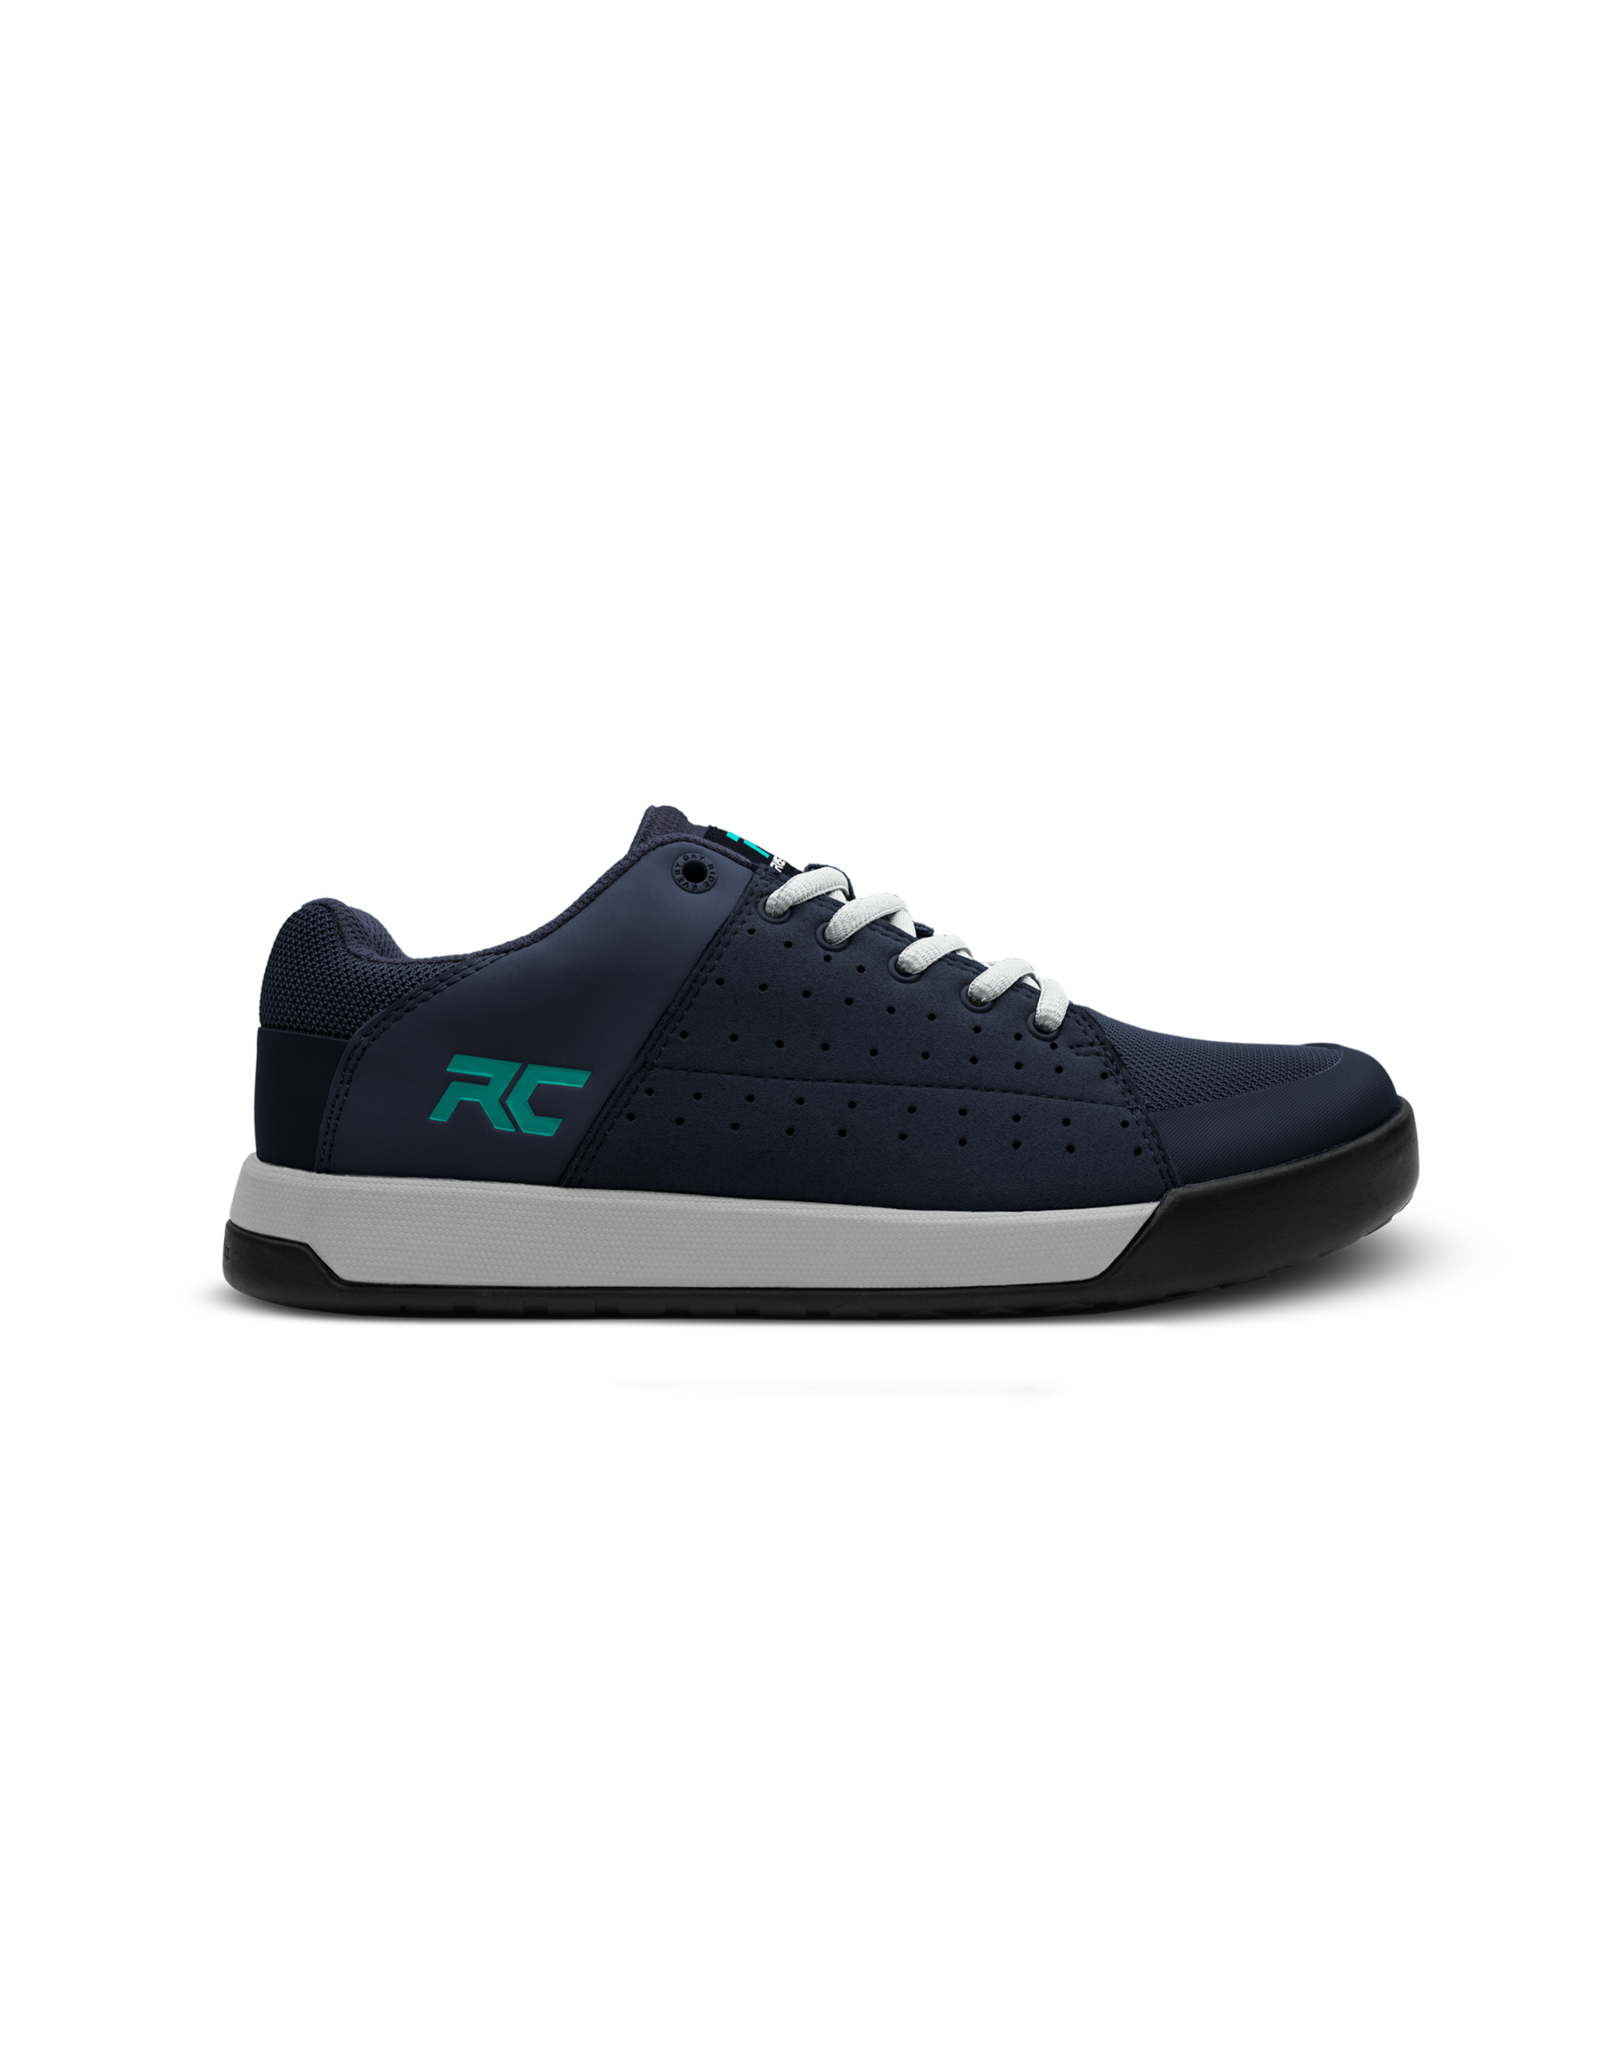 Ride Concept Ride Concept Women's Livewire 40.0 / 9 - Navy/teal